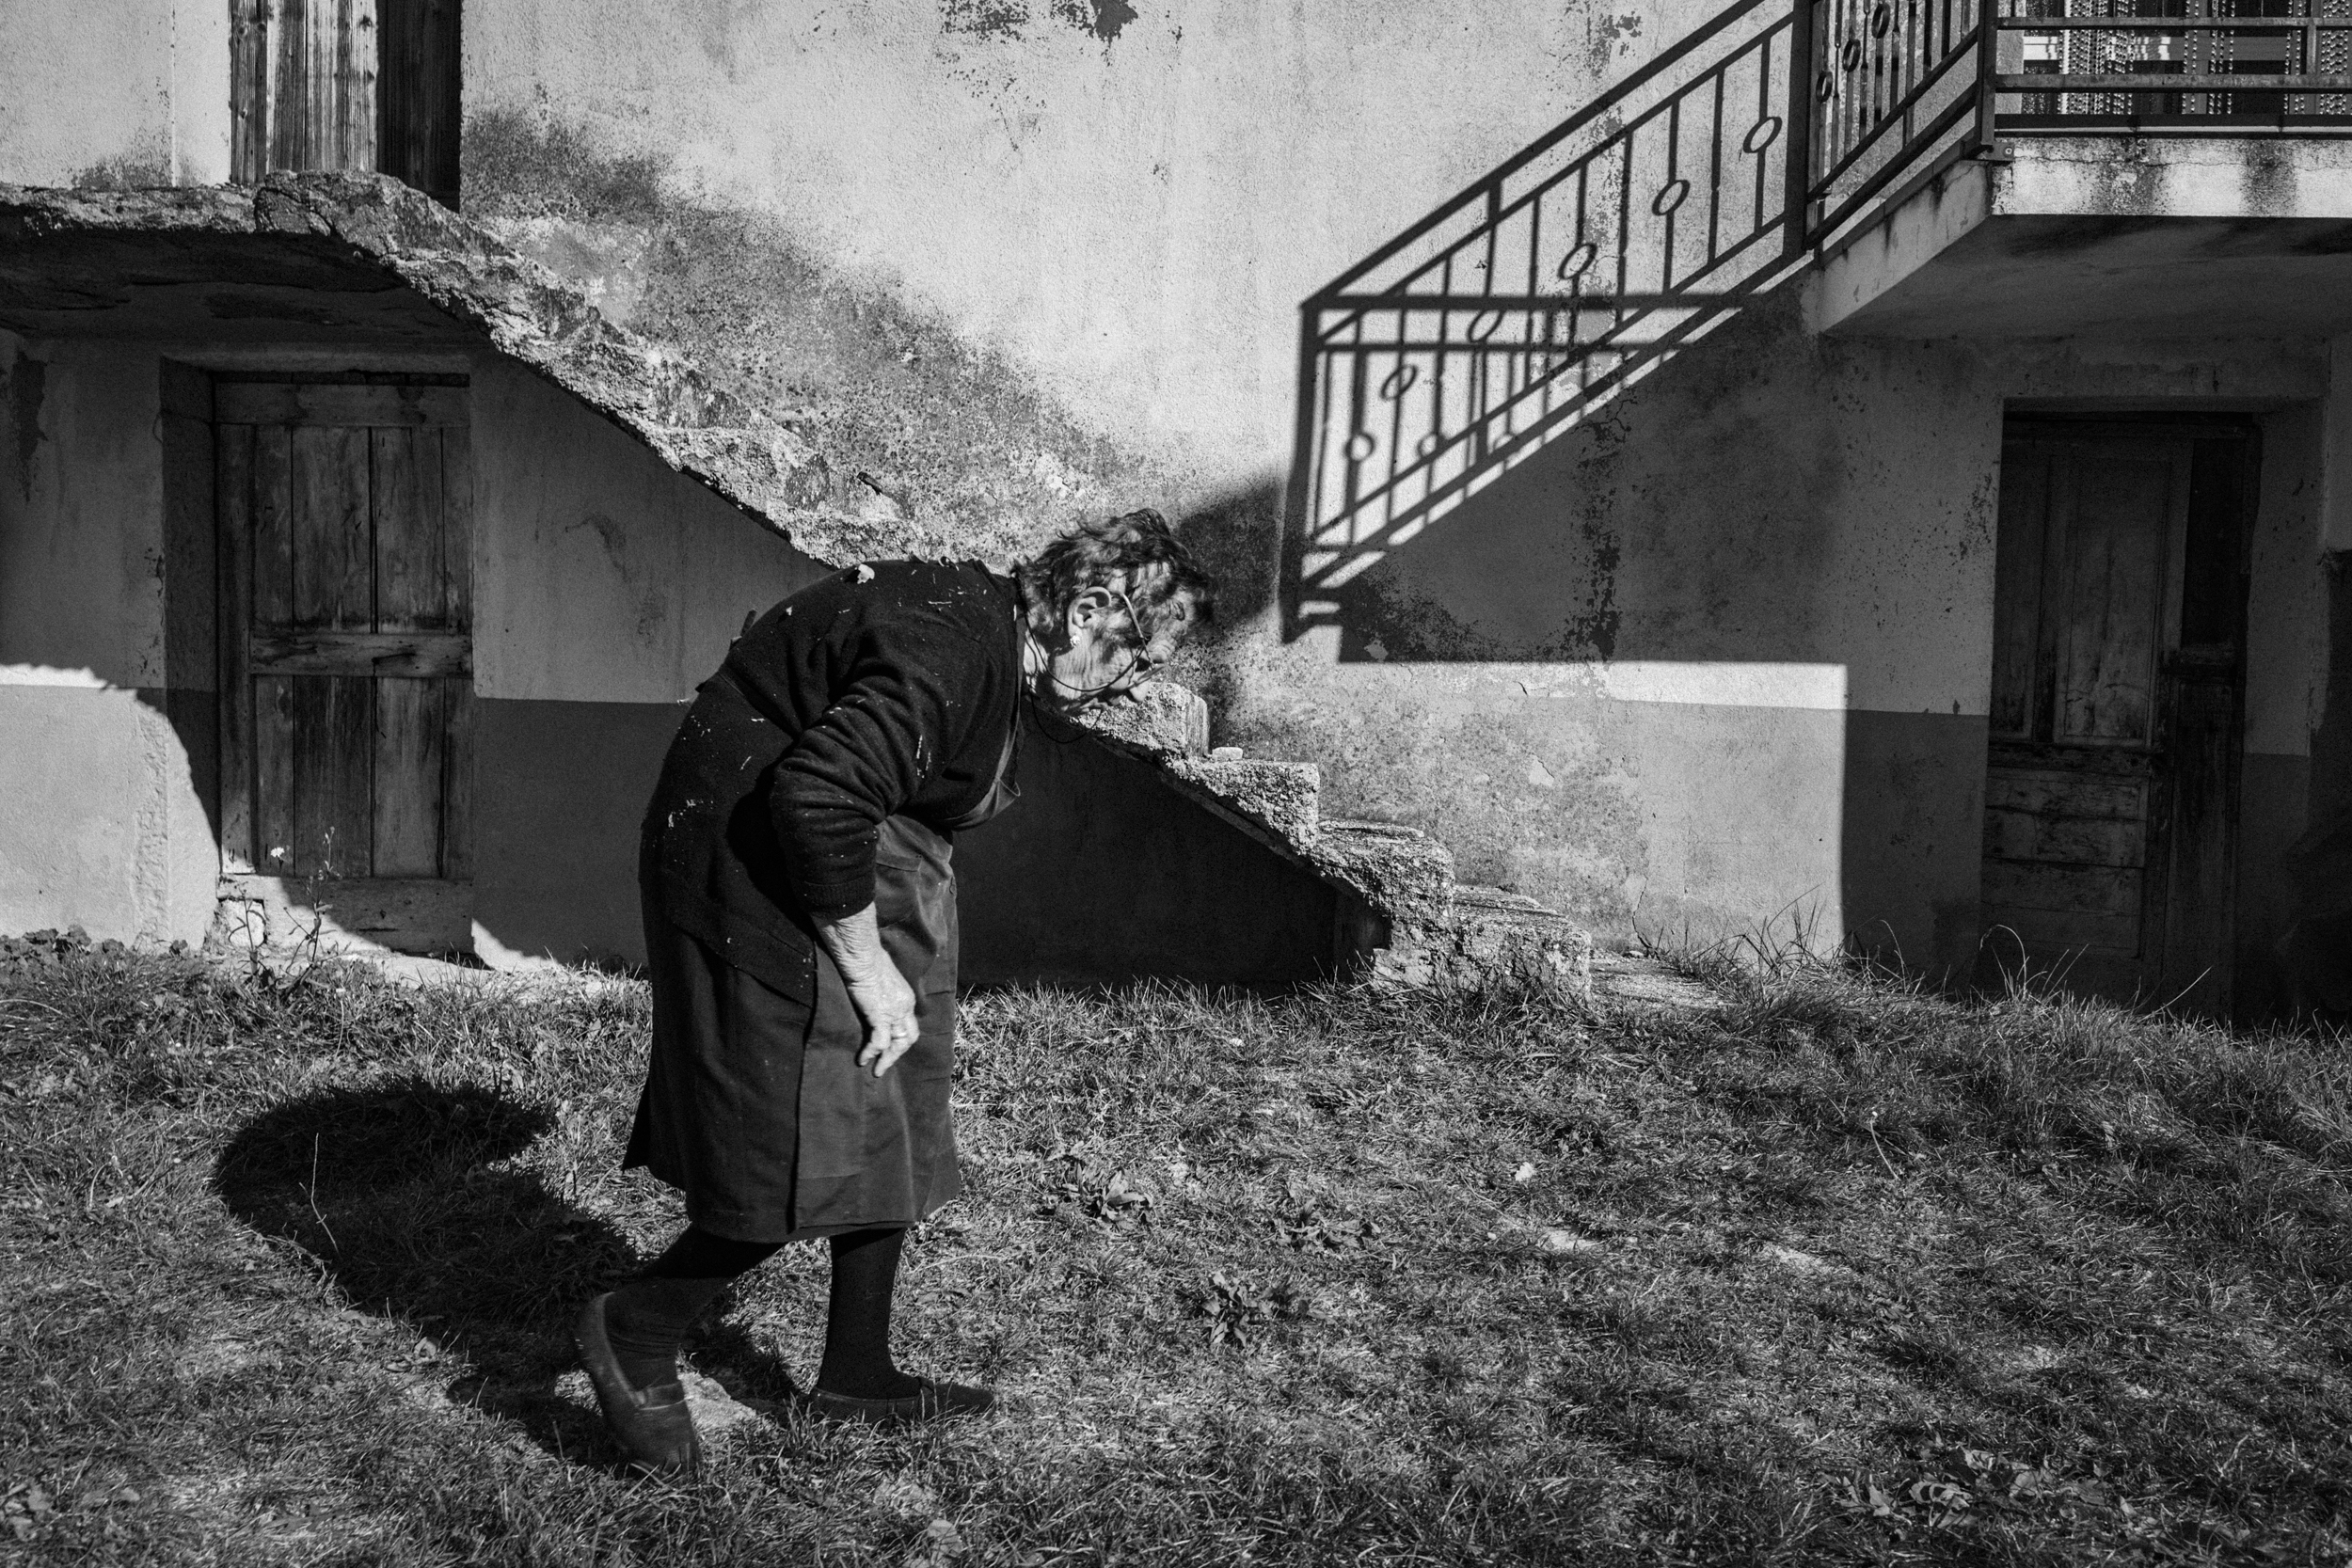 Sant'Angelo del Pesco (IS), Italy -November 2015, contrada Canala. Casciato Angela, widow, nearby  her house. By now, she lives in the house only during daytime.